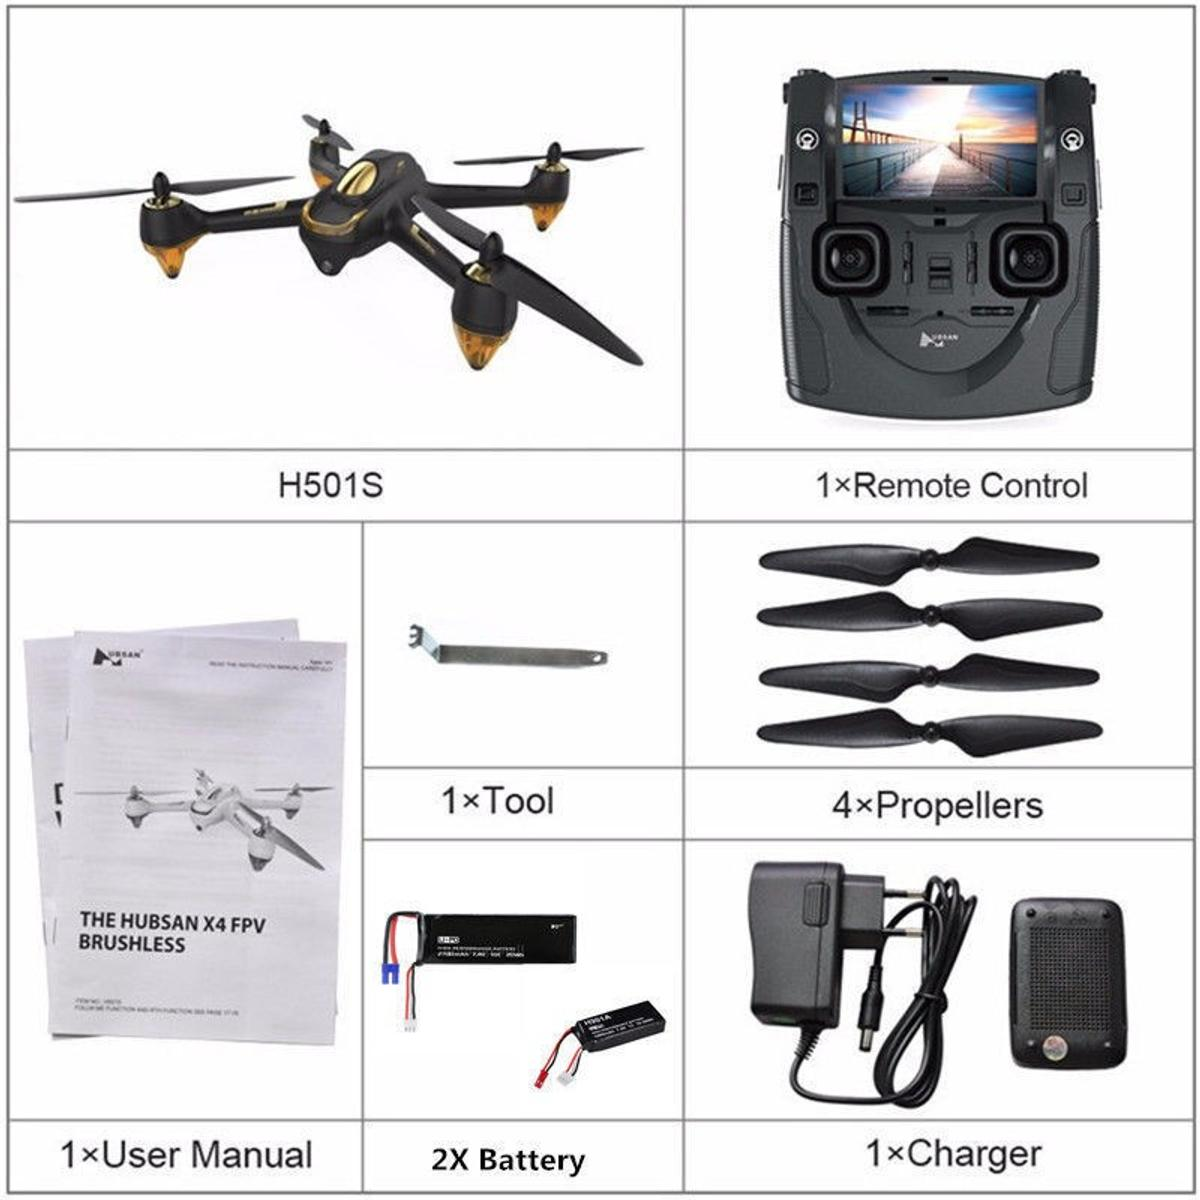 X4 FPV BRUSHLESS H501S DRONE in Northampton for £180 00 for